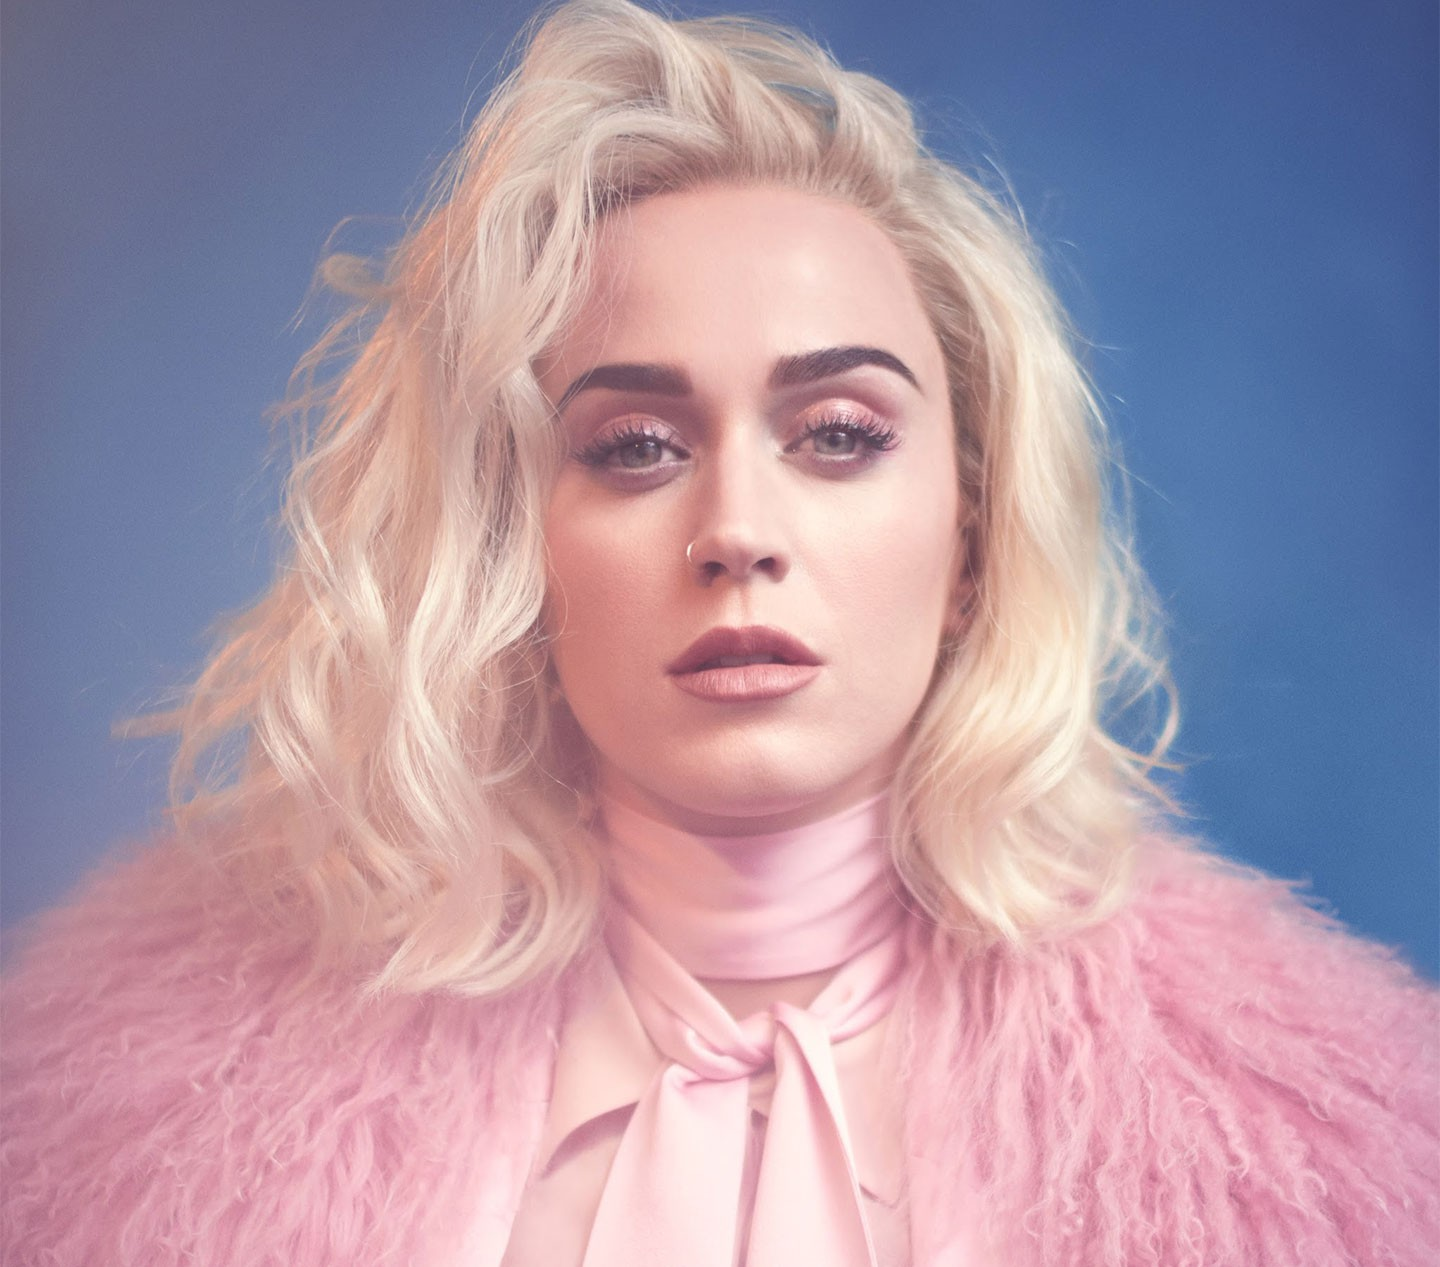 KATY PERRY - New single